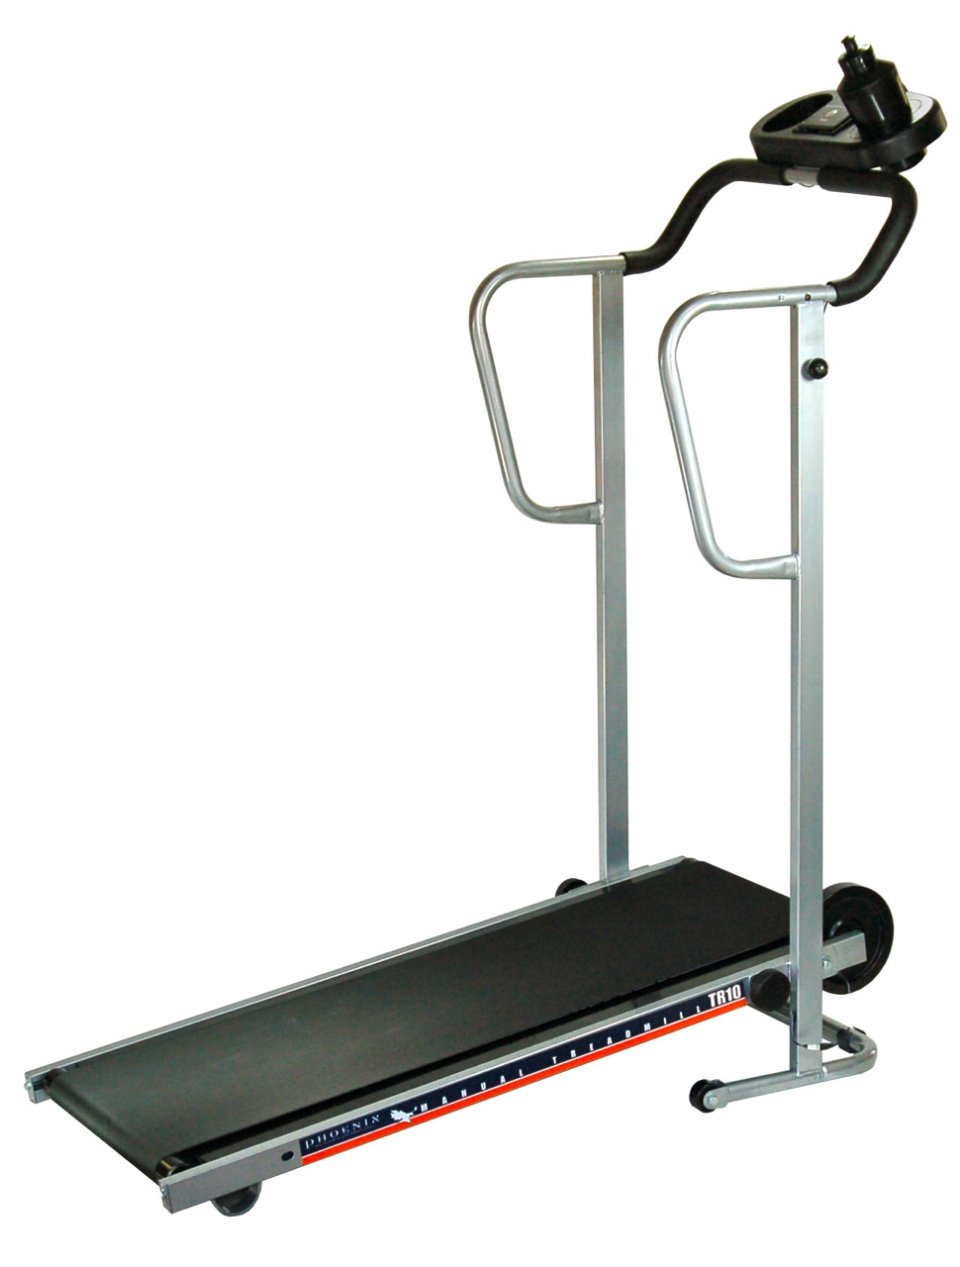 Phoenix 98510 Easy-Up Best Manual Treadmill Reviews